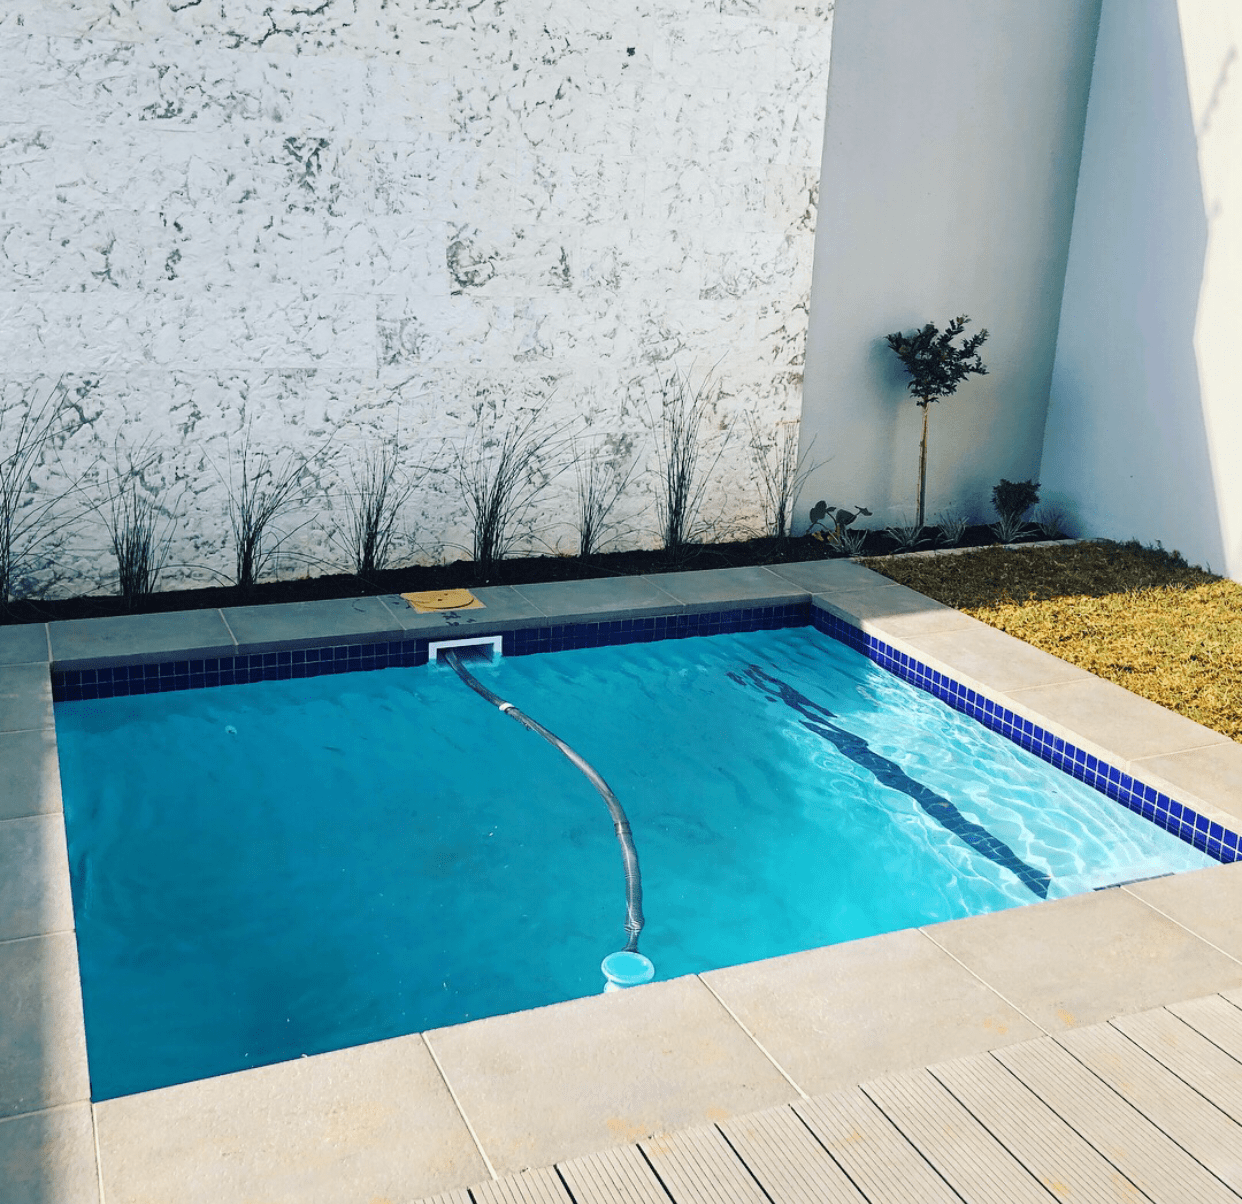 Quality swimming pool services Call US Now 079 553 0694